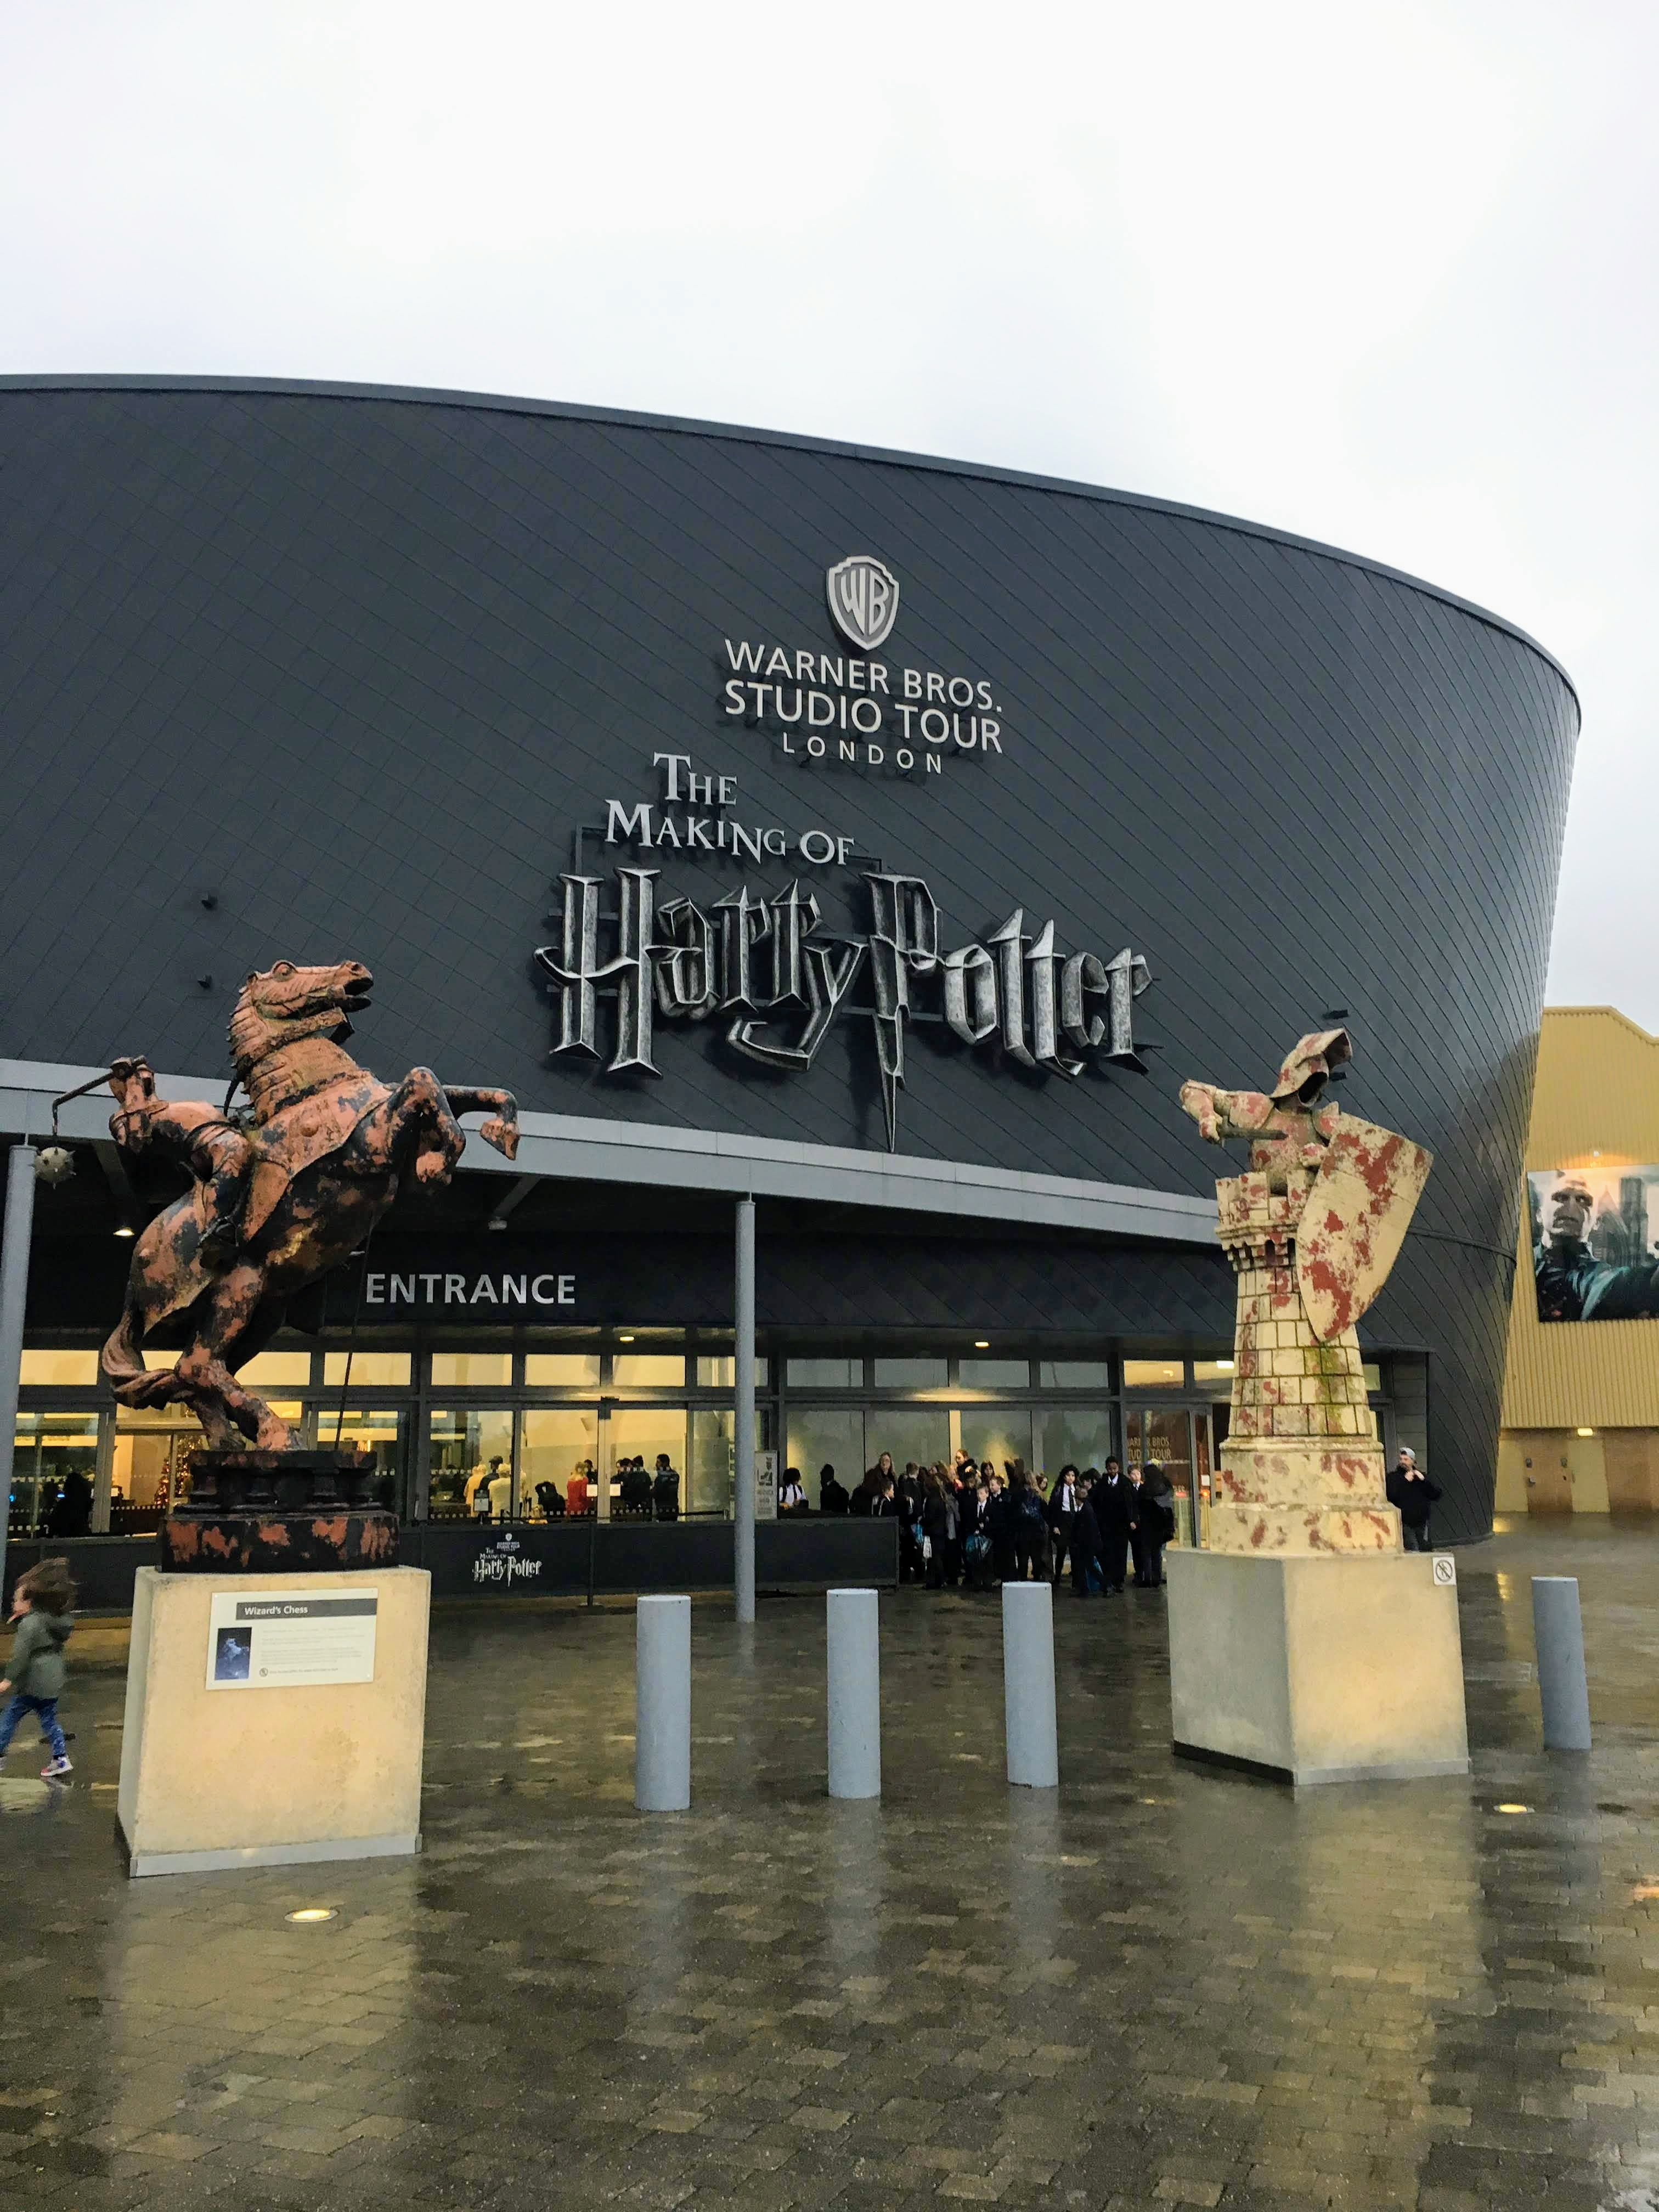 Outside of the Warner Bros Studio Tour London Making of Harry Potter, two wizard chess statues in front of the entrance